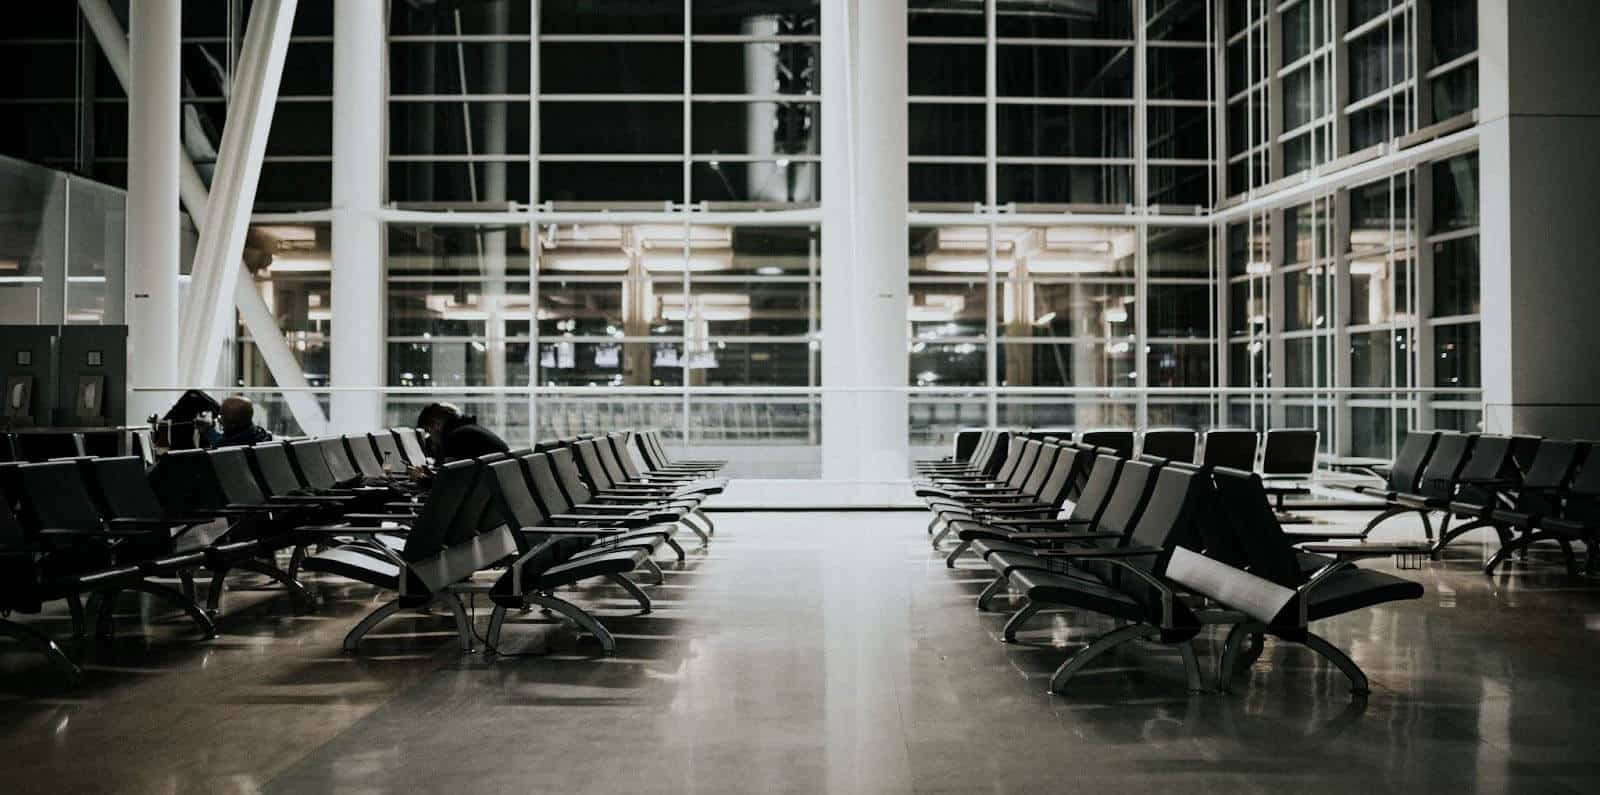 Quiet Waiting Area In Airport Terminal At Night